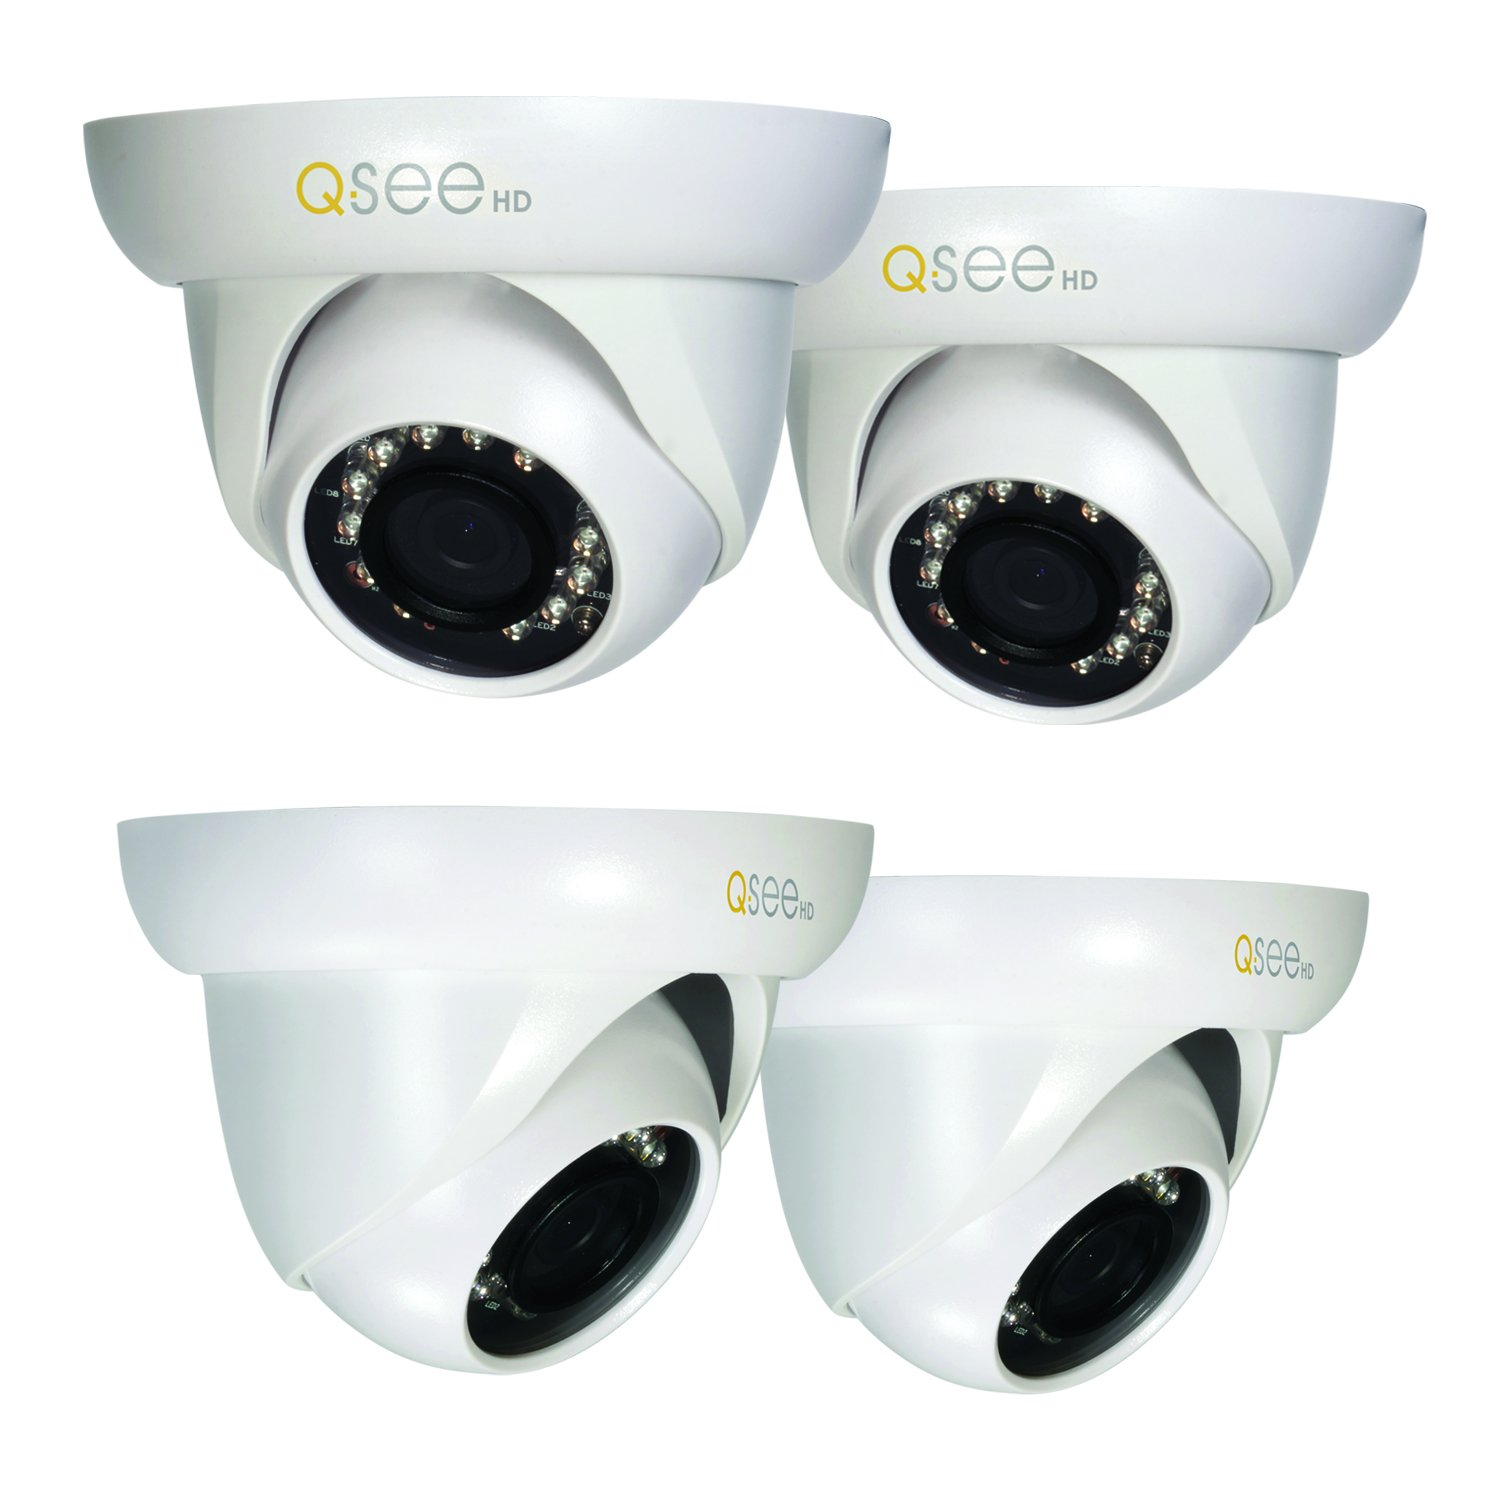 Q-See QCA7202D-4 720p High Definition Analog, Plastic Housing, Dome Security Camera 4-Pack (White) by Q-See